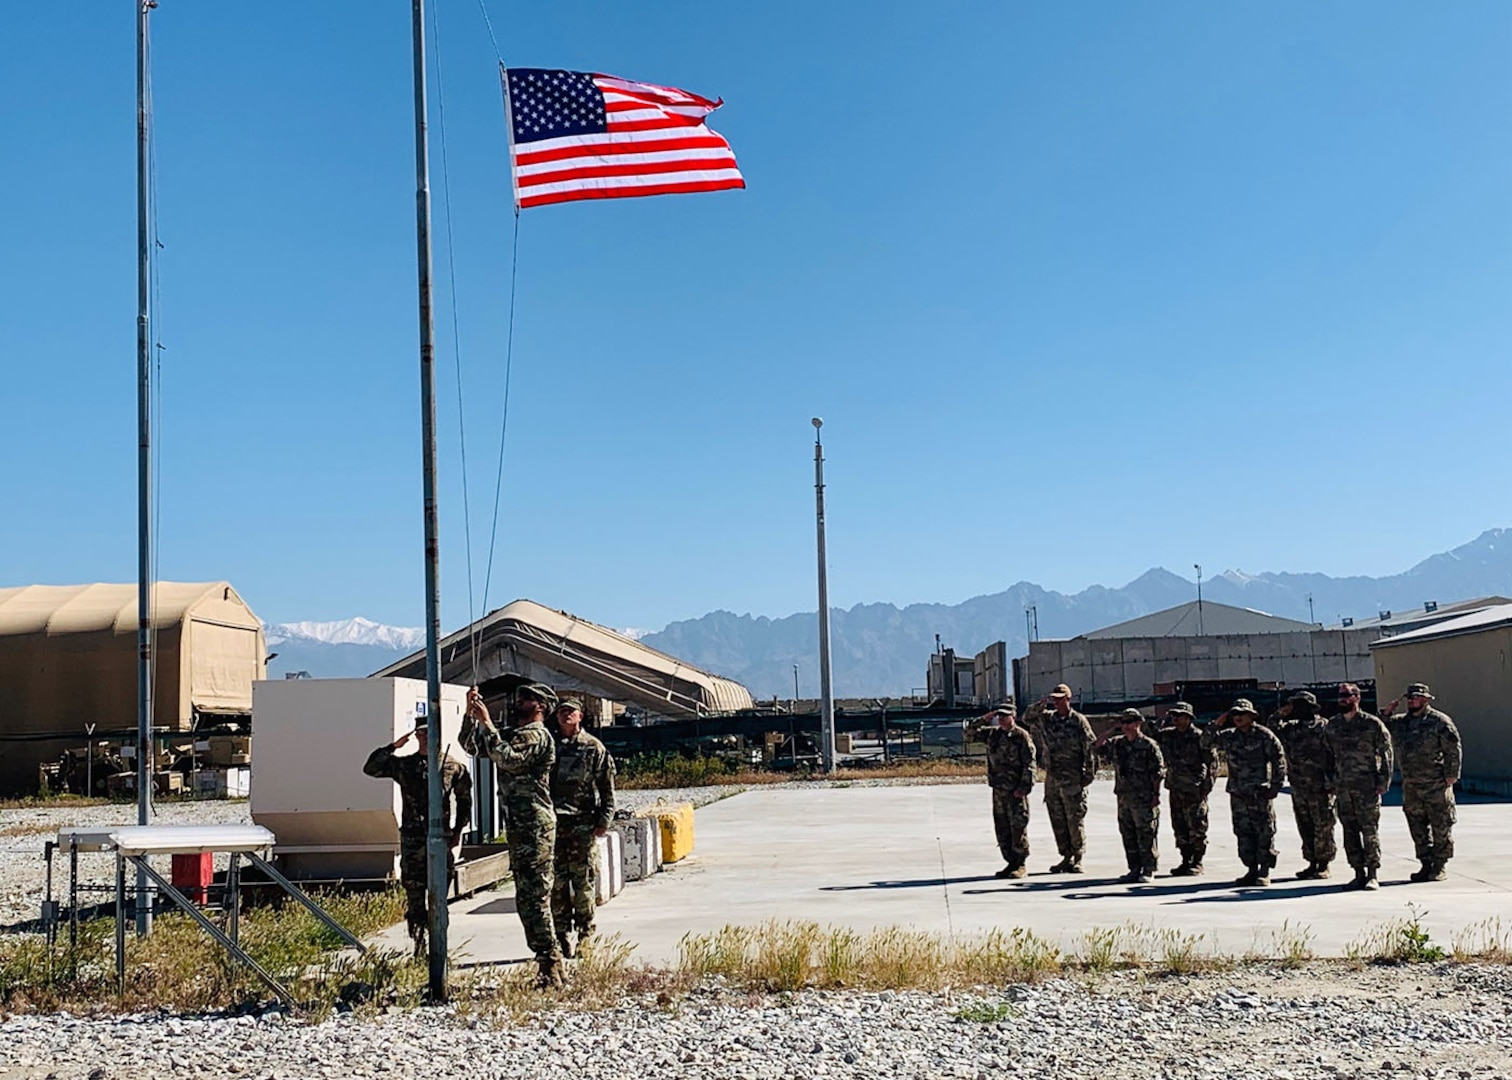 Members of the DLA Disposition Services team in Afghanistan take a moment to observe Memorial Day and remember fallen employee Krissie Davis killed during her 2015 deployment there.